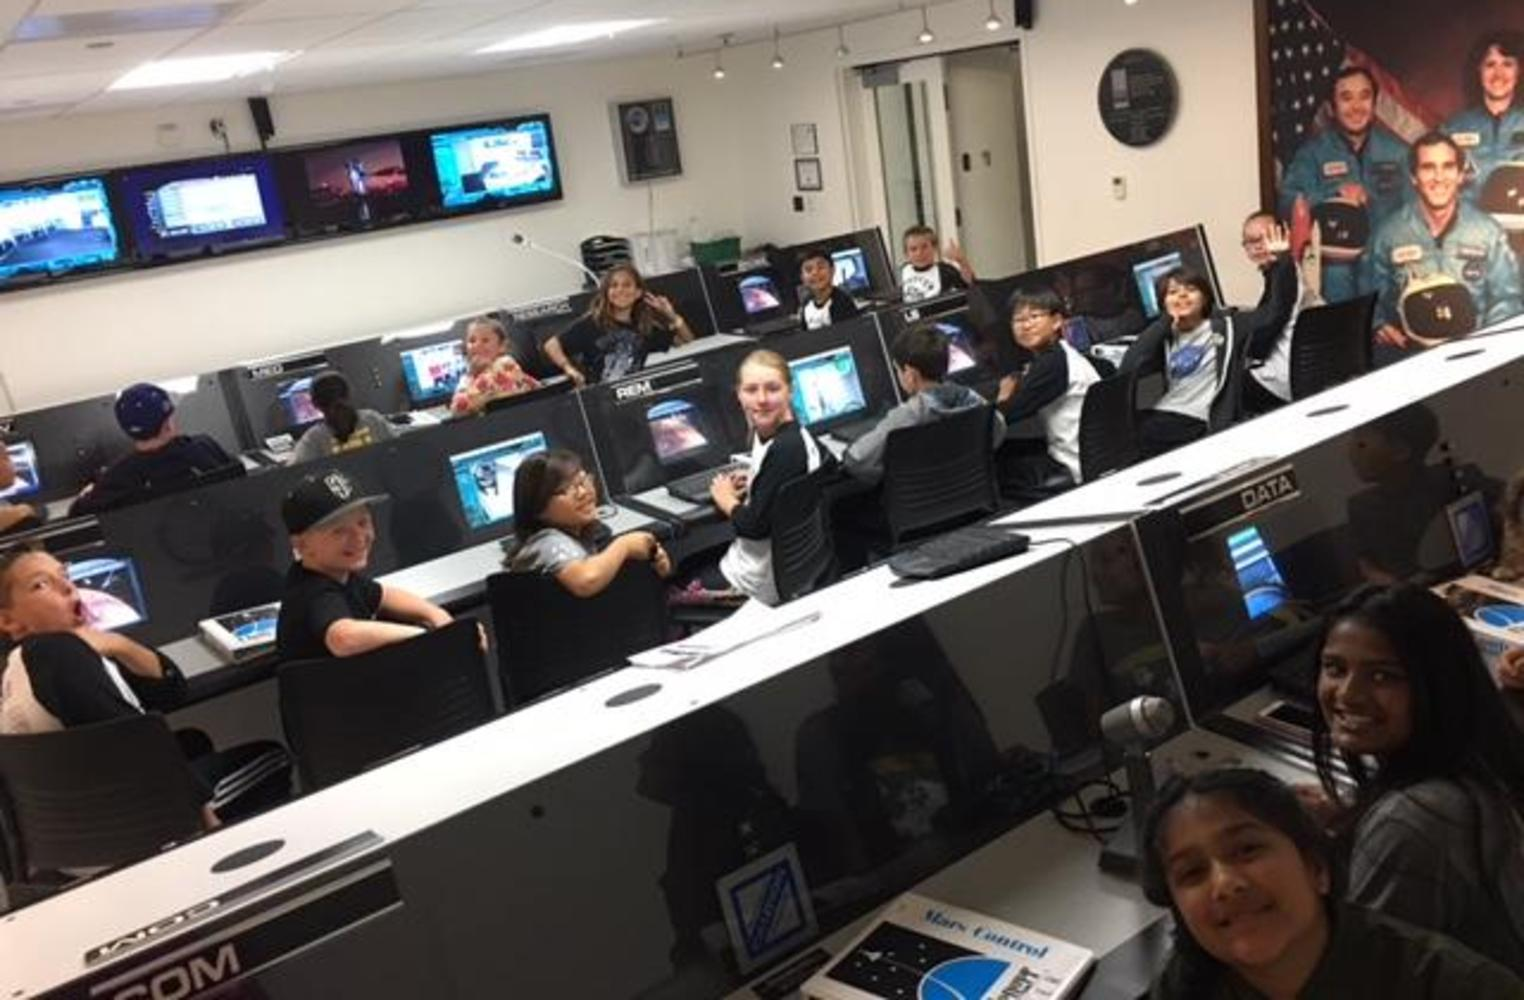 field trip to Columbia Space Mission in Downey